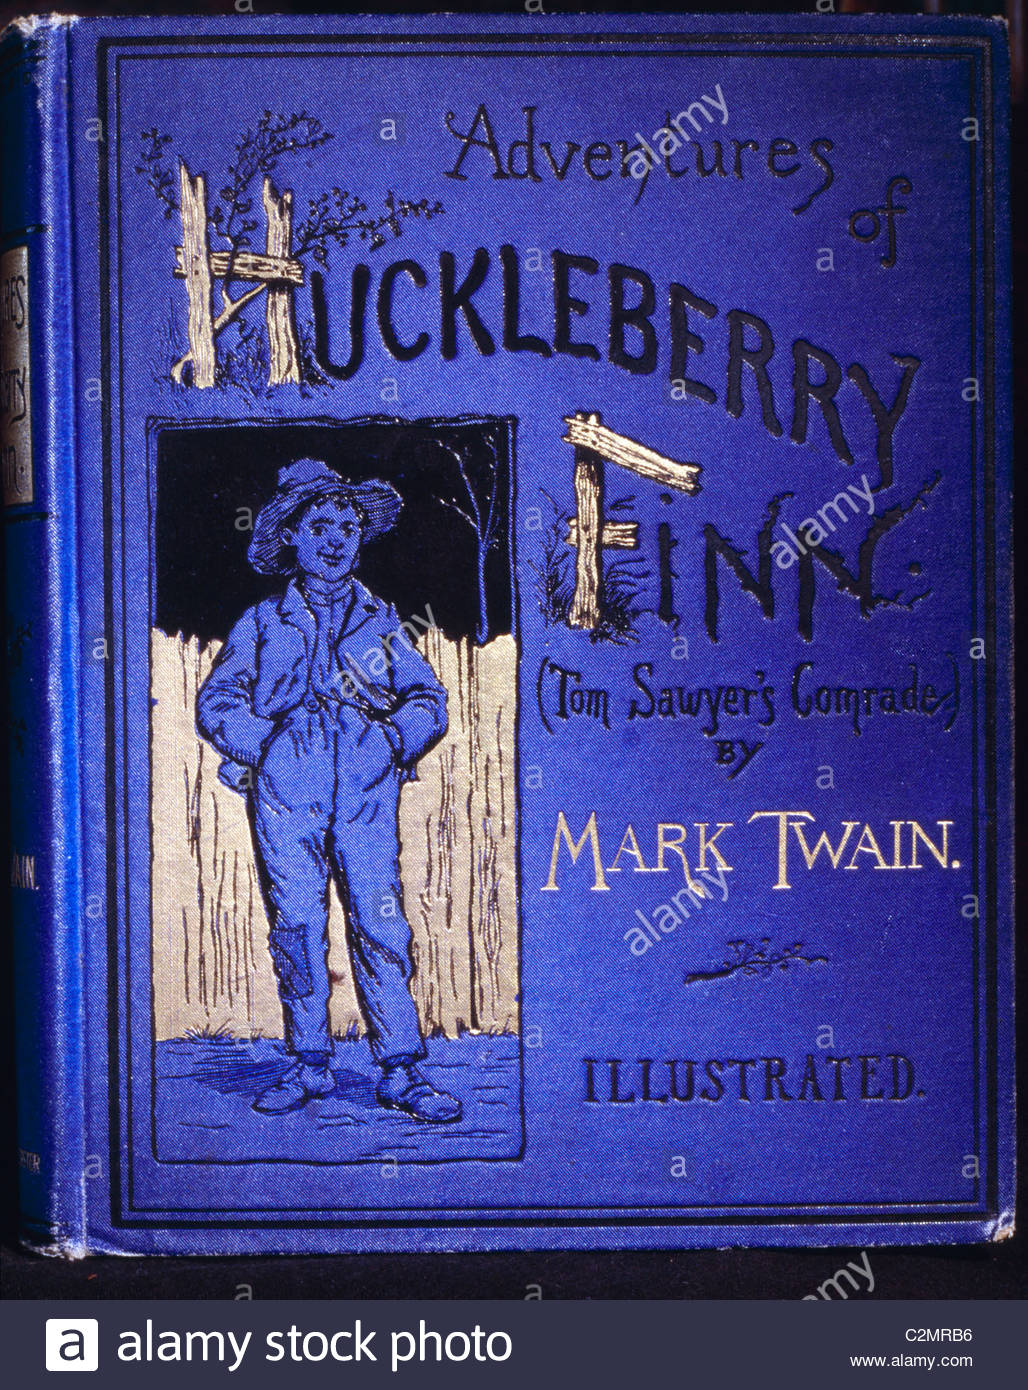 the adventures of huck finn street The adventures of huckleberry finn begins by discussing the events that lead to this particular novel, which happened in the adventures of tom sawyer both novels are set in the town of st petersburg, missouri roughly between 1835–1845 (before the civil war.